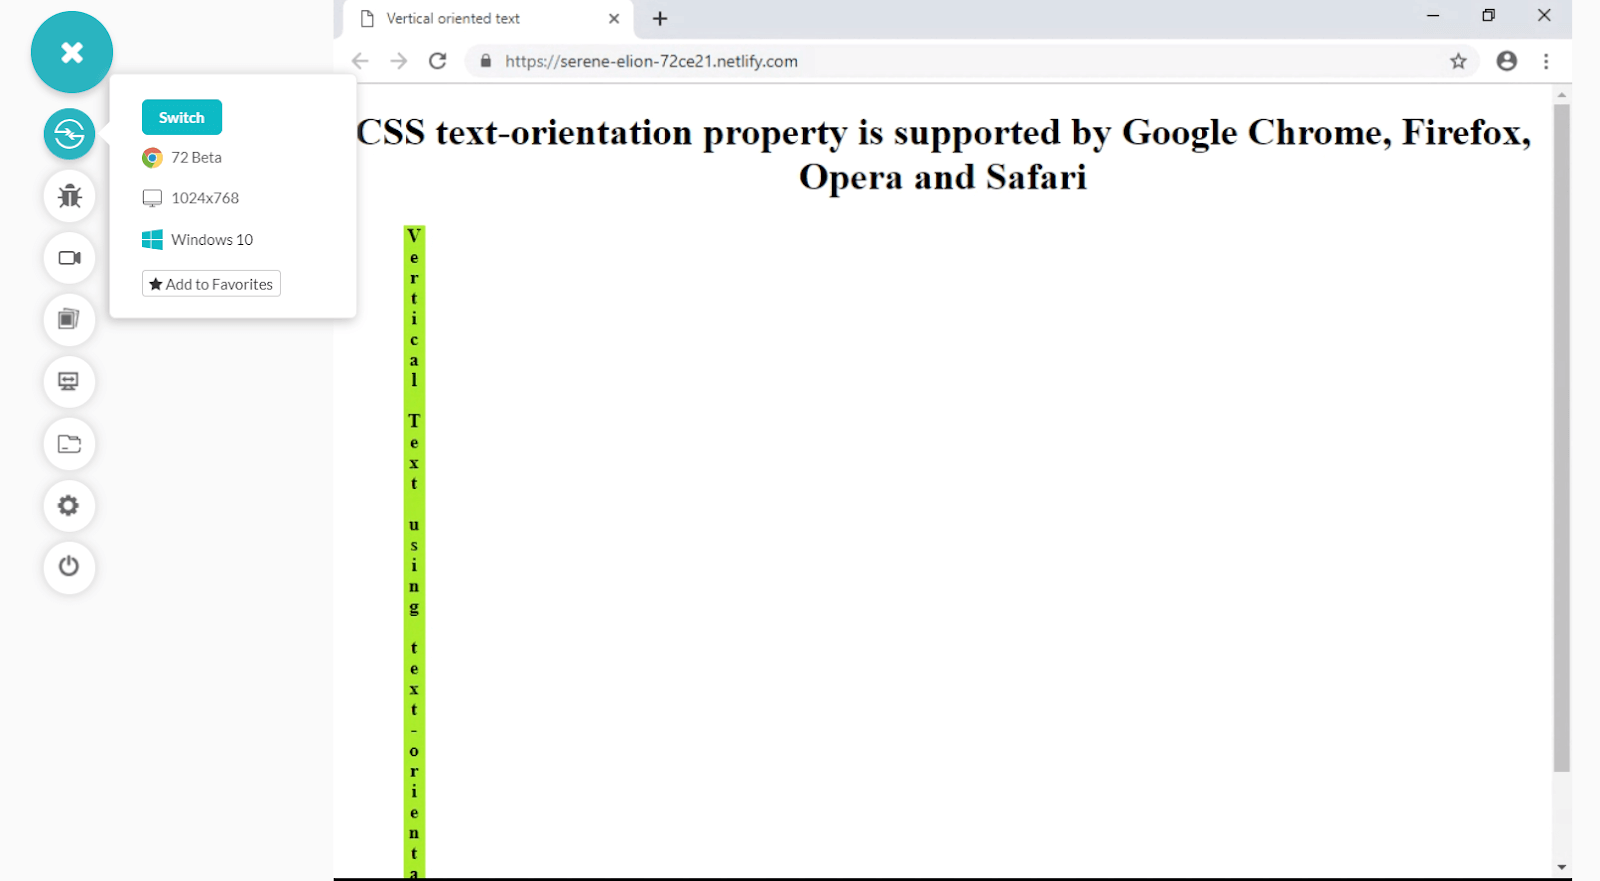 CSS text-orientation property supported by Google Chrome